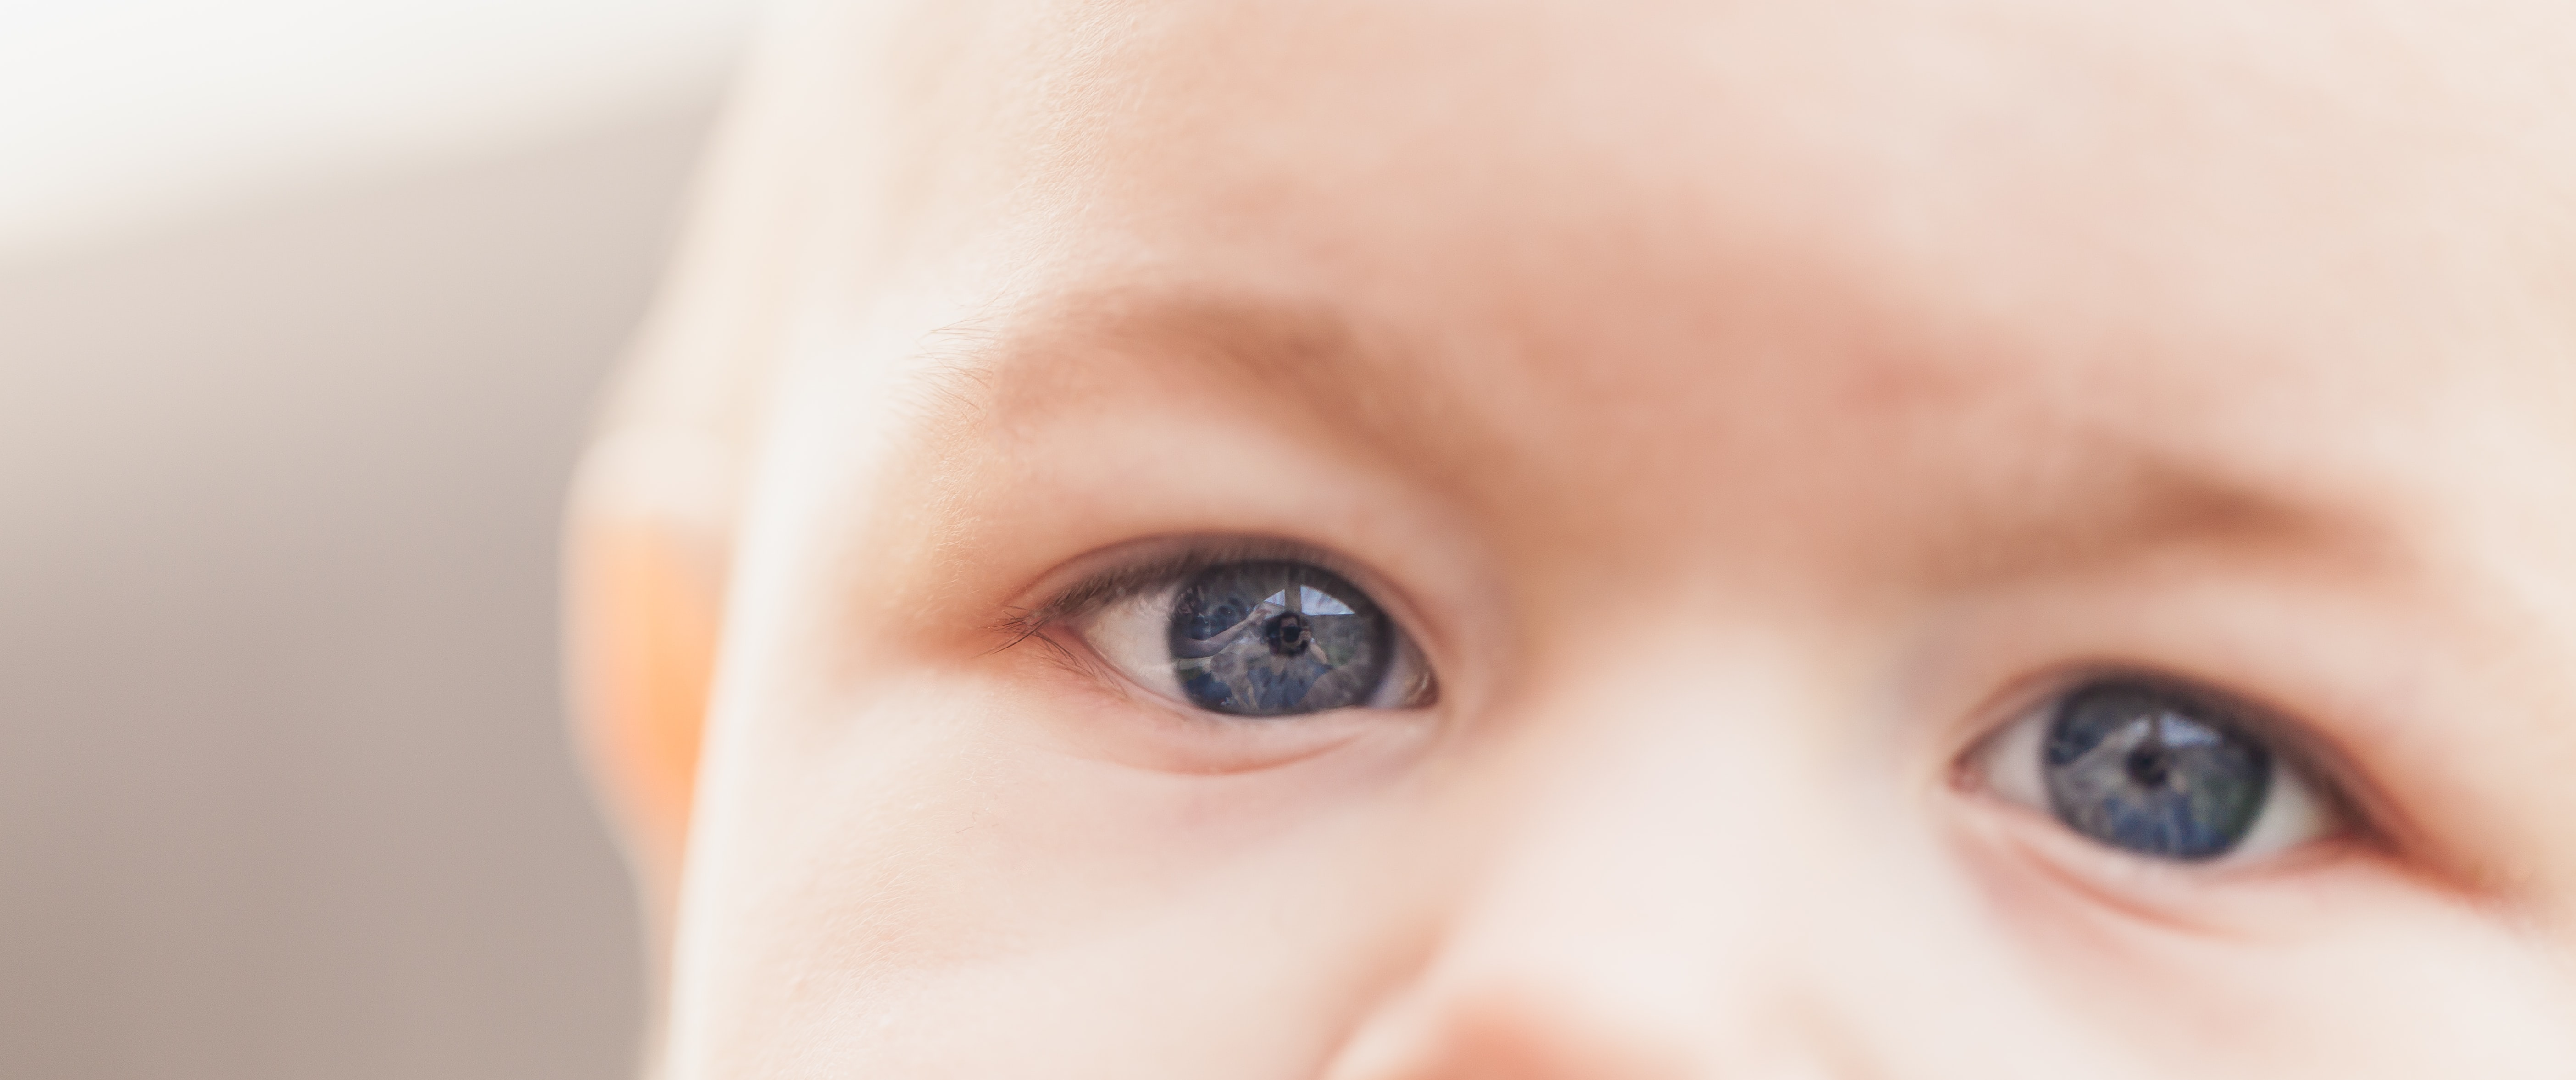 View of a baby's forehead and nose with light blue eyes and light eyebrows